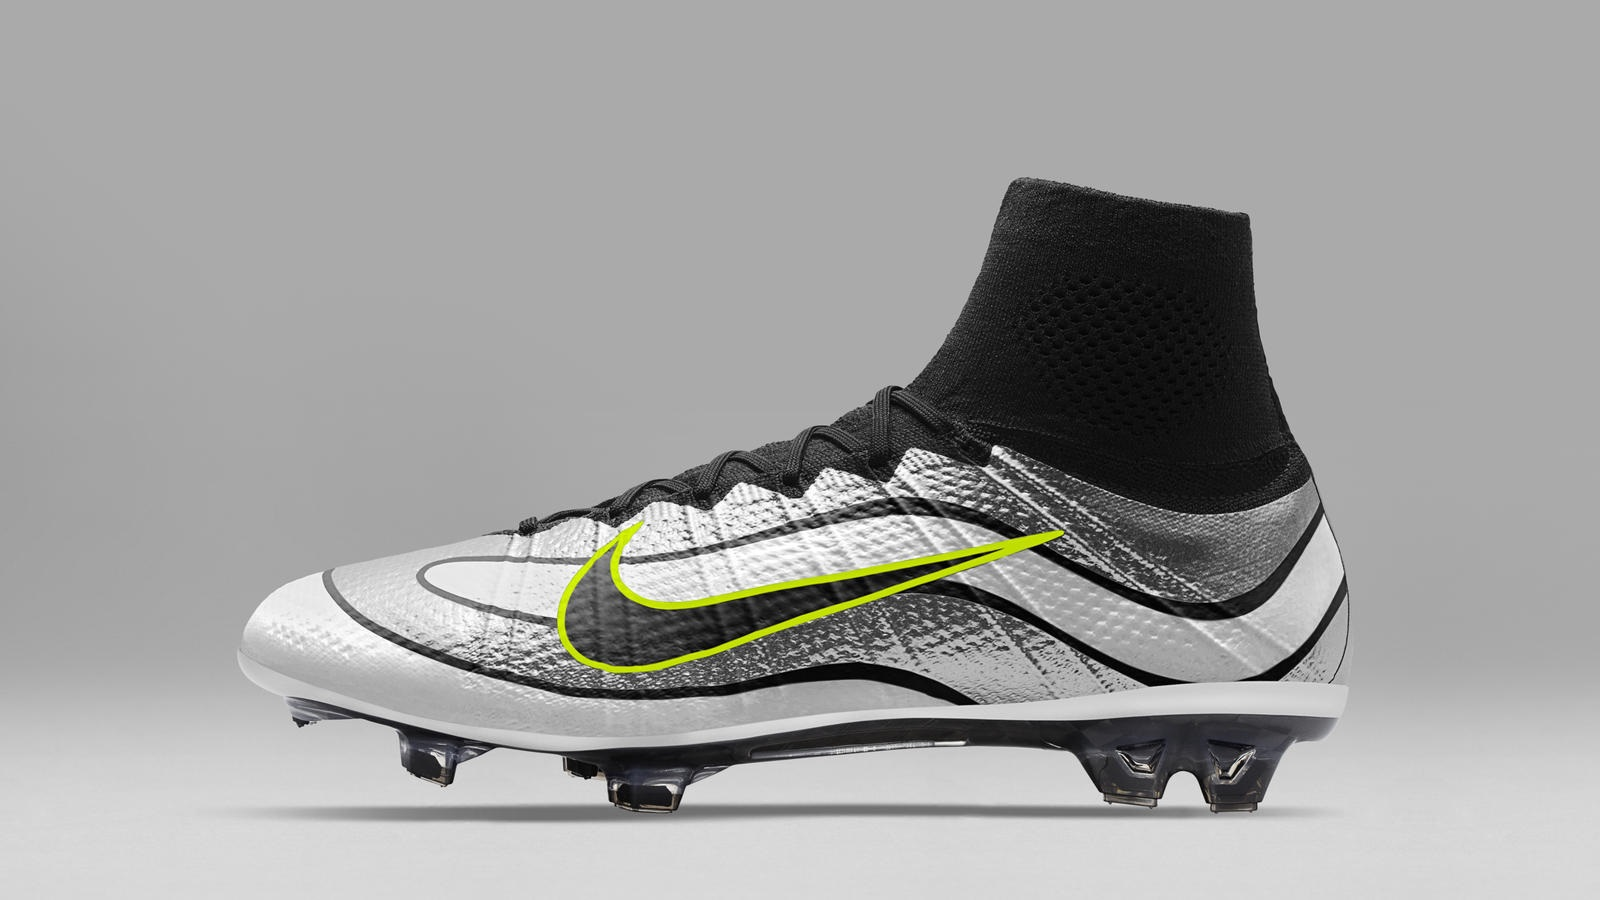 c488368dc68d PICS  Nike have released a new version of arguably their greatest ...